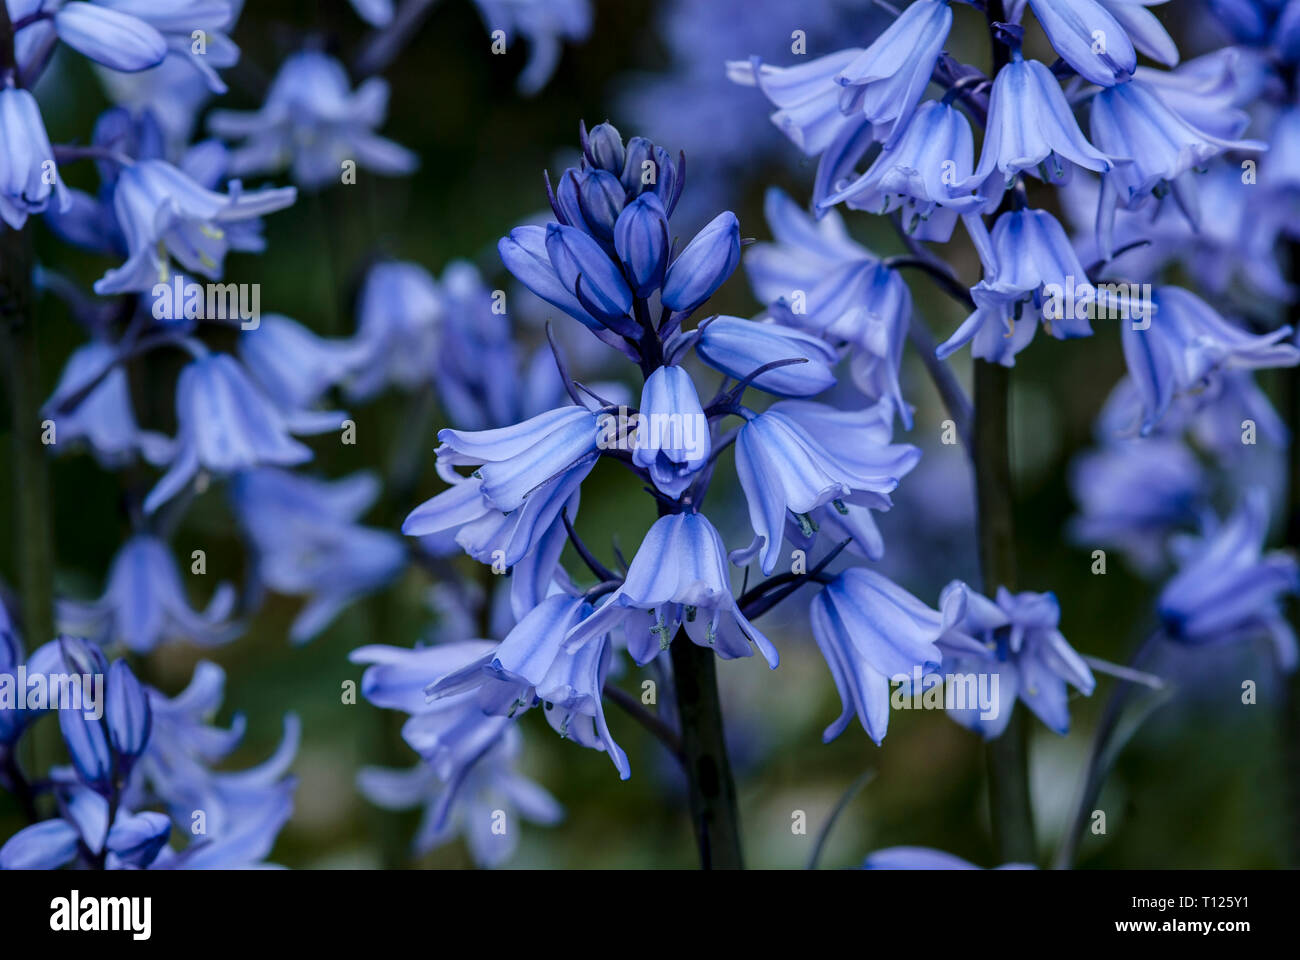 Hyacinthoides hispanica, the Spanish bluebell, in groups with blurred green background - Stock Image